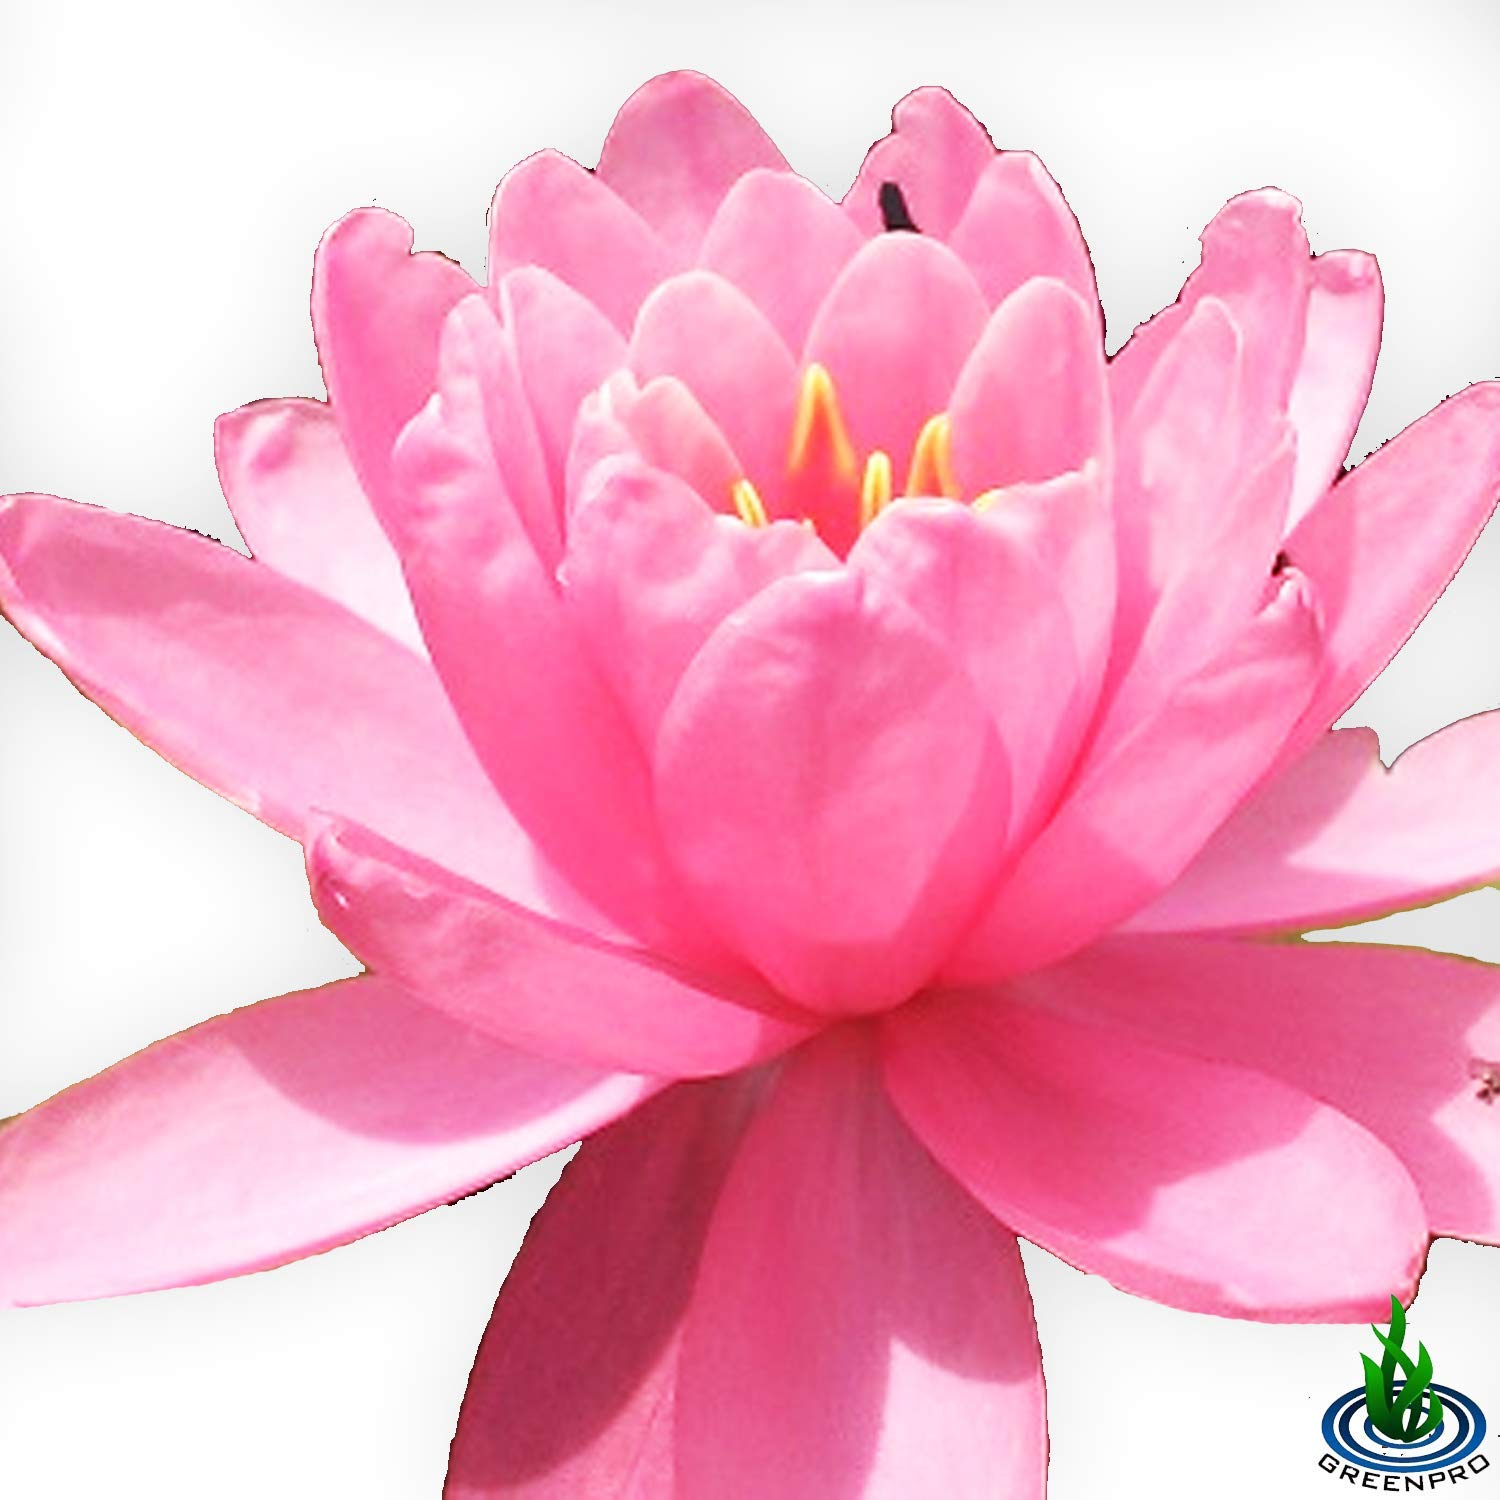 Live Water Lily Tuber Nymphaea Perry's Fire Opal Pink Red Hardy Aquatic Plants for Aquarium Freshwater Fish Pond Flower Garden by Greenpro (Image #5)